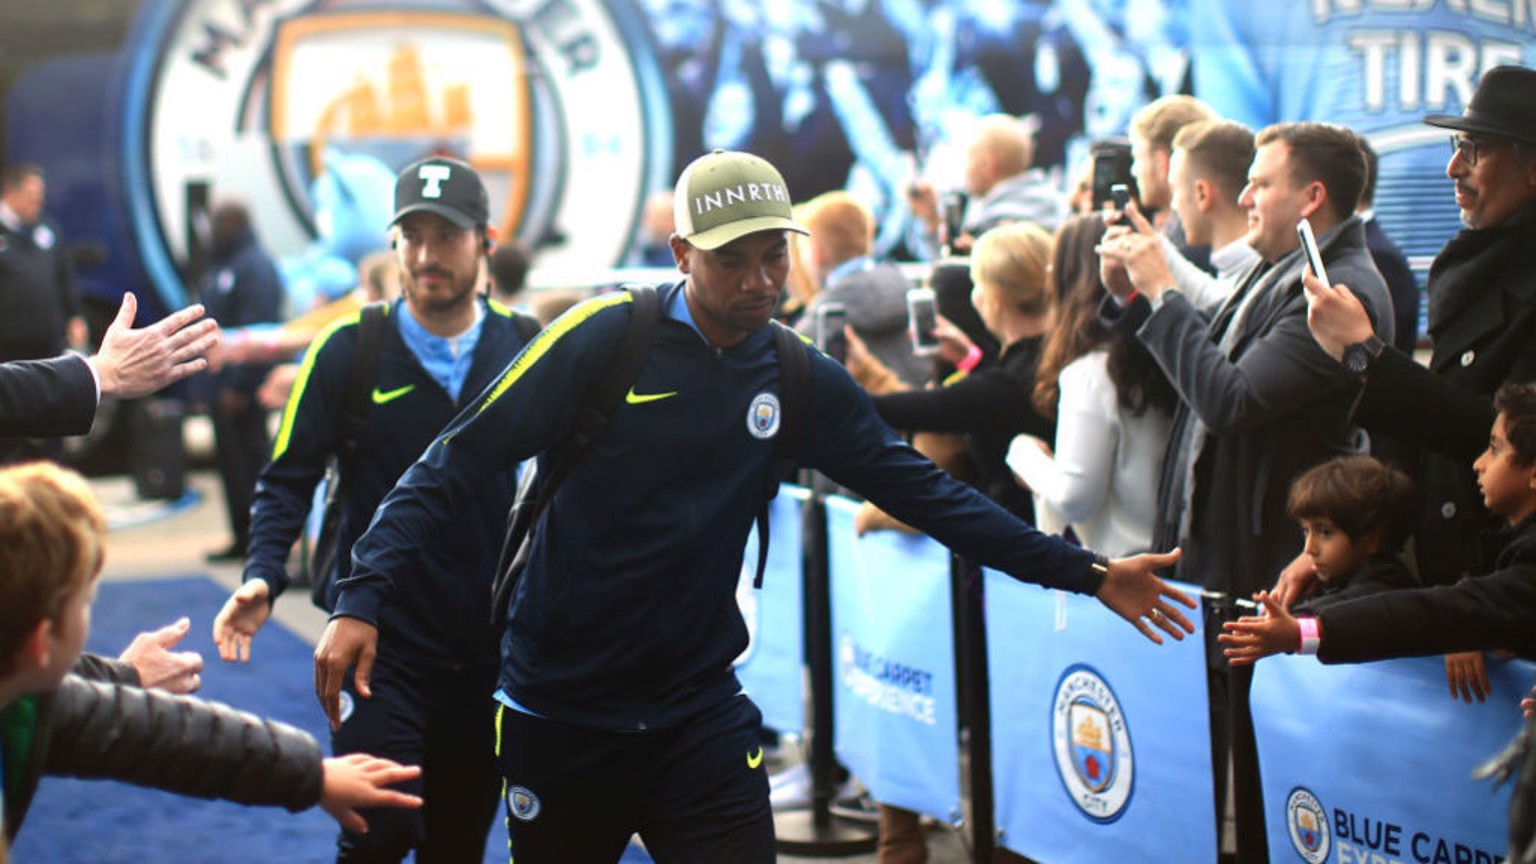 HATS THE WAY TO DO IT: The fans greet Fernandinho and David Silva as City arrive at the Etihad